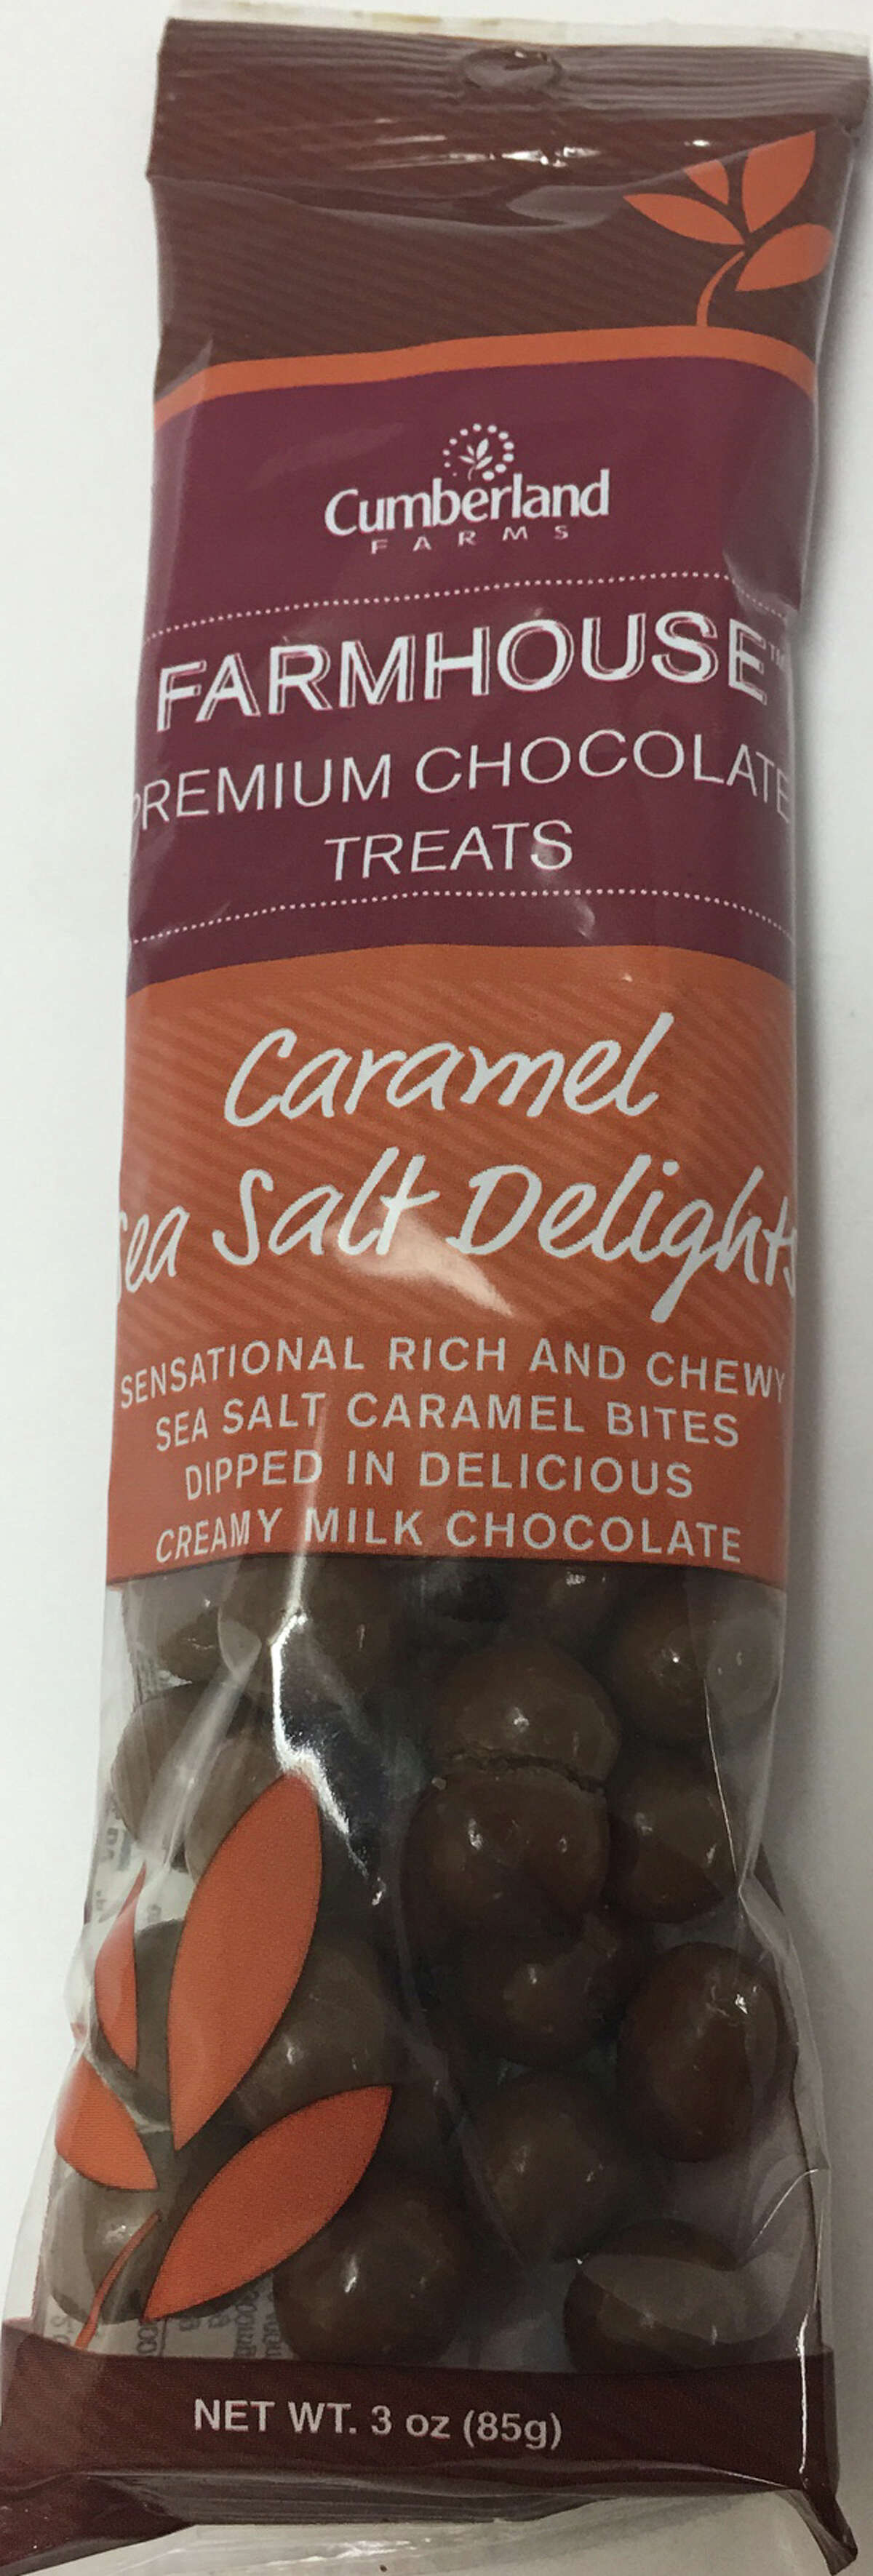 Cumberland Farms has recalled the Sea Salt Caramel Delights flavor of Cumberland Farms Farmhouse Premium Chocolate Treats due to the possible presence of peanuts. Photo courtesy of the U.S. Food and Drug Administration.